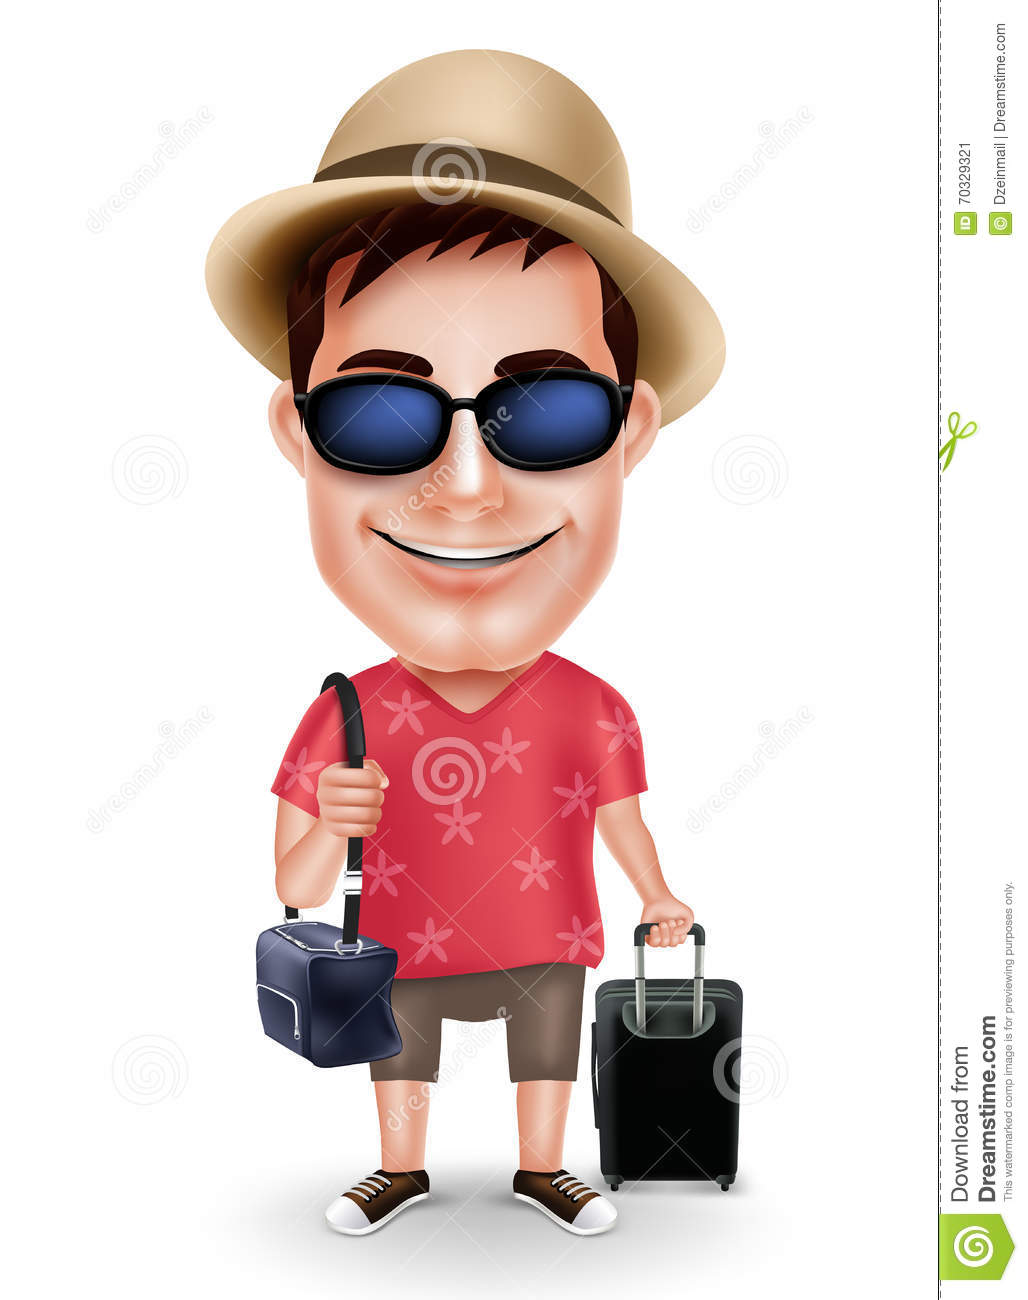 man character with casual dress cartoon vector